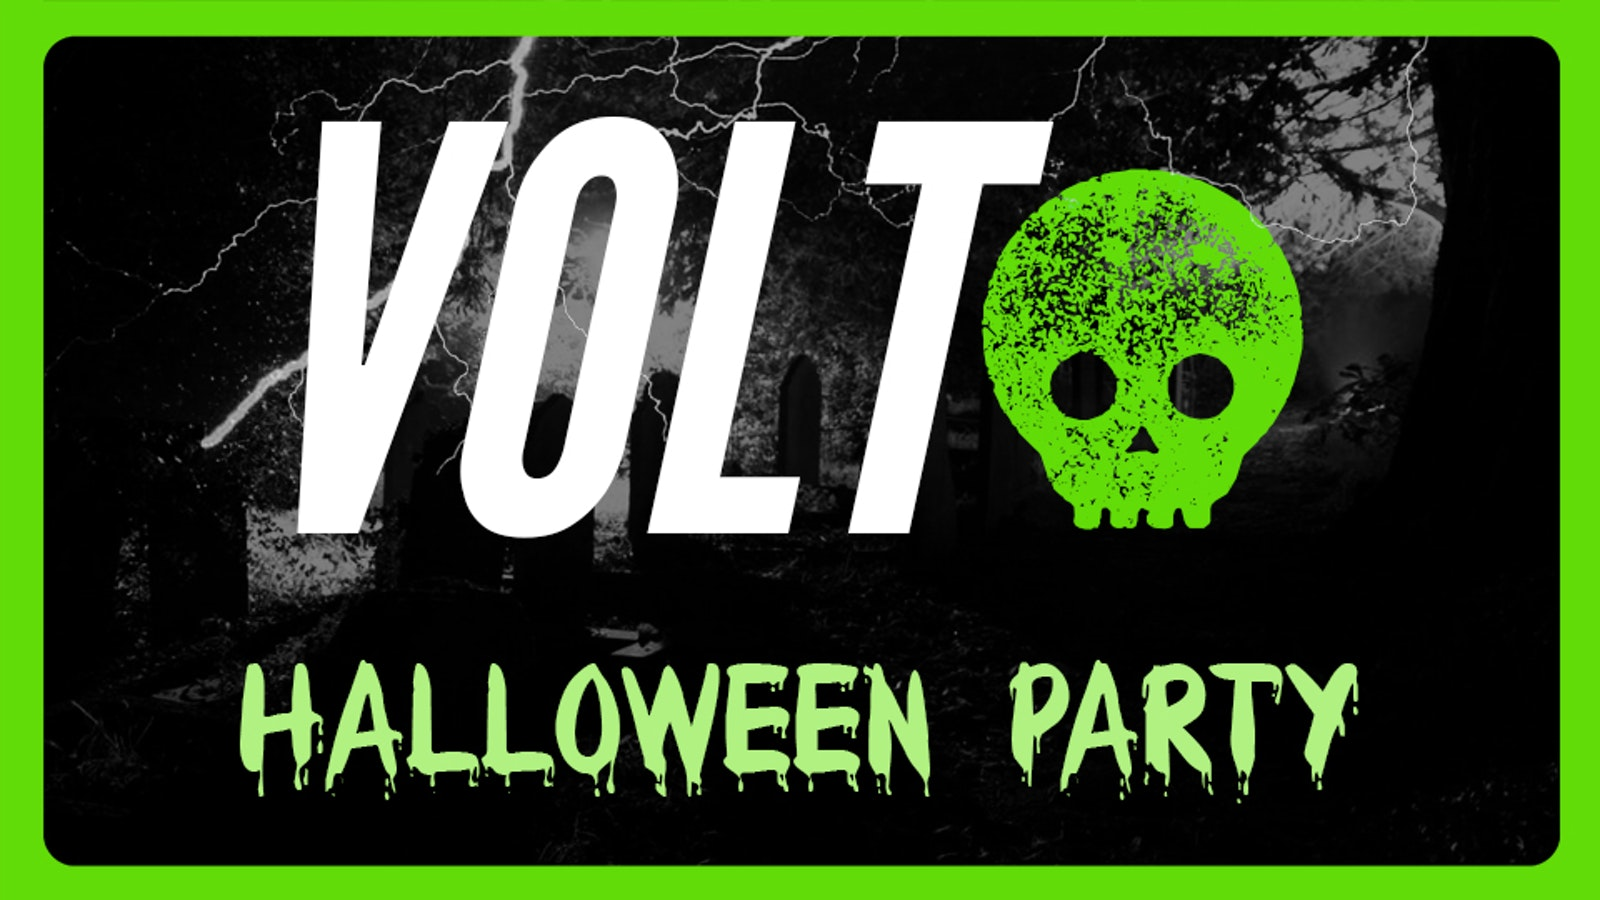 VOLT – The Halloween Party!